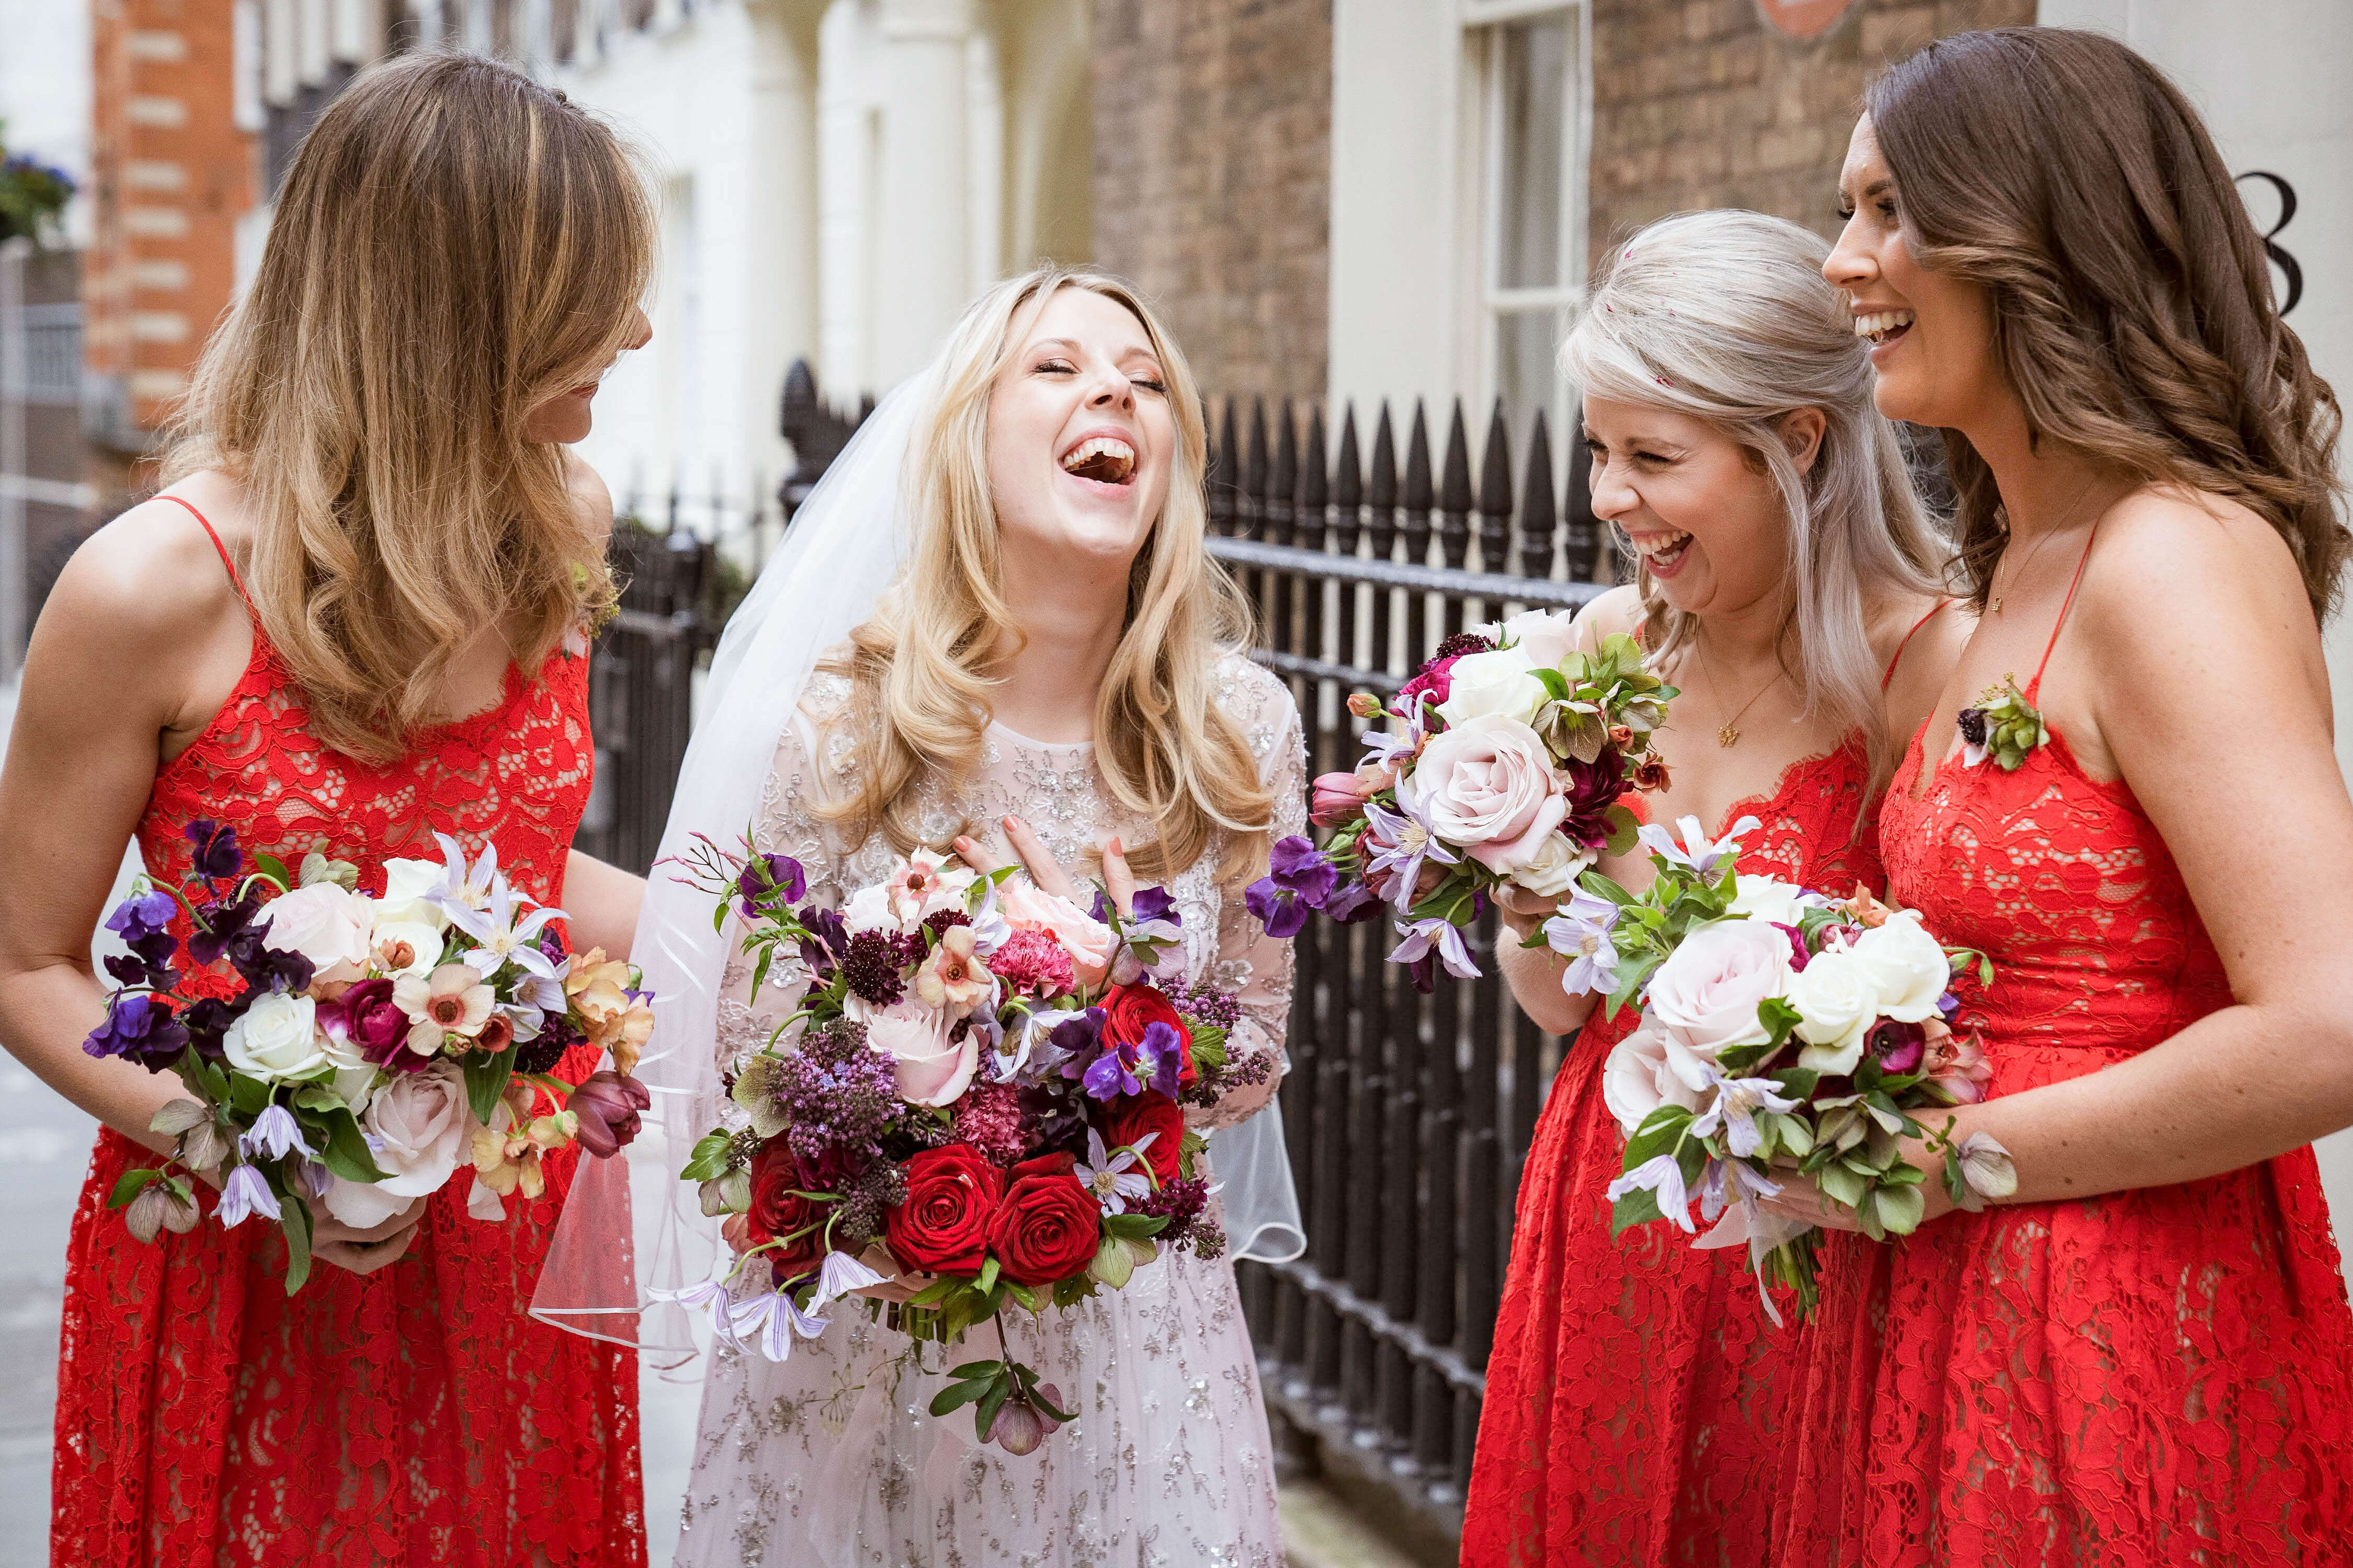 Bride with Wedding bouquet. Bridesmaids wearing Red Dresses